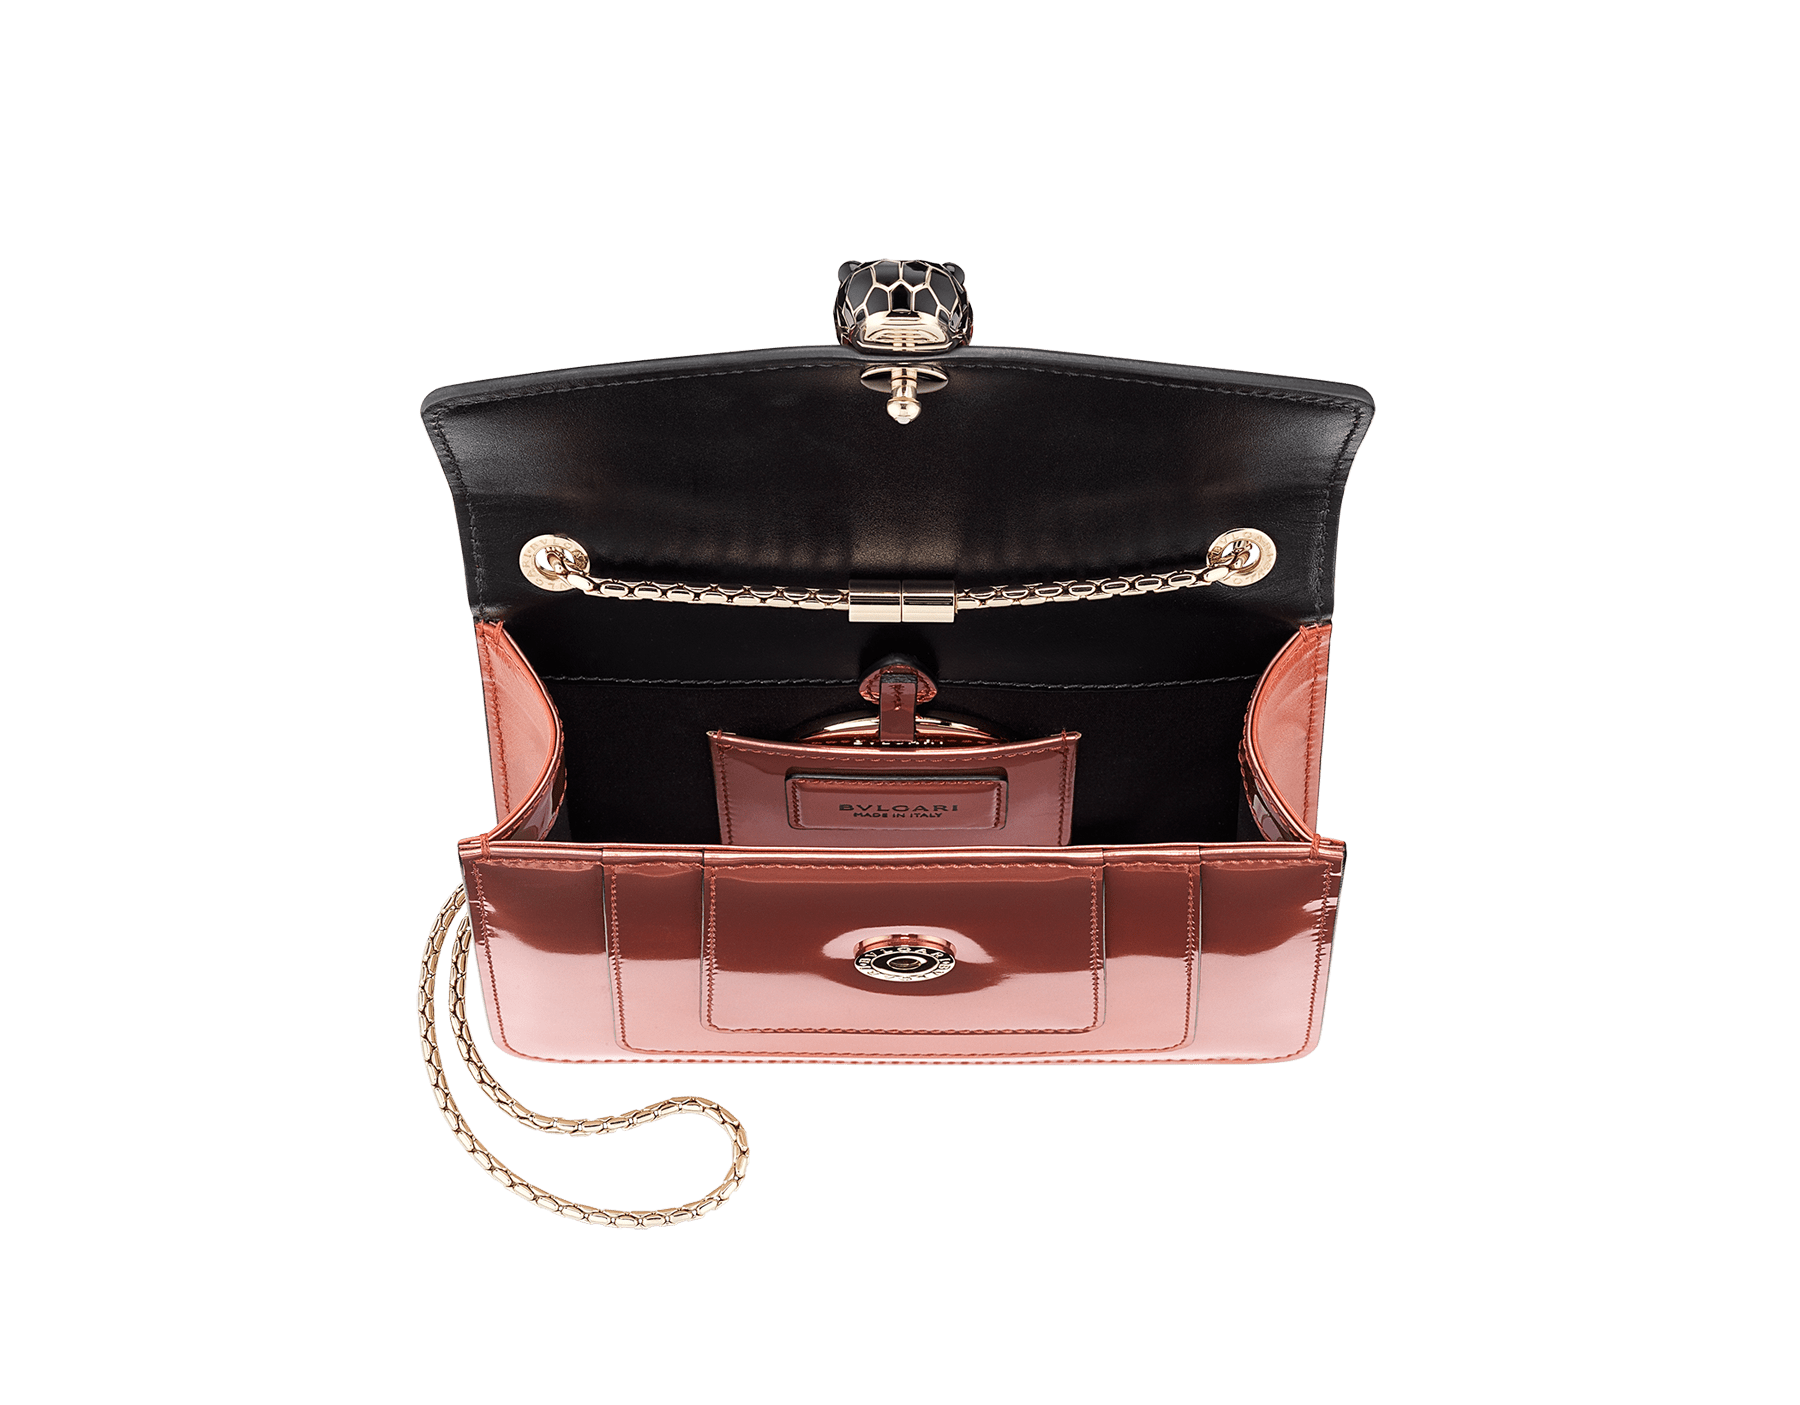 """Serpenti Forever"" crossbody bag in imperial topaz brushed metallic calf leather and tone-on-tone smooth calf leather. Iconic snakehead closure in light gold plated brass embellished with black and imperial topaz enamel and black onyx eyes. 288886 image 5"